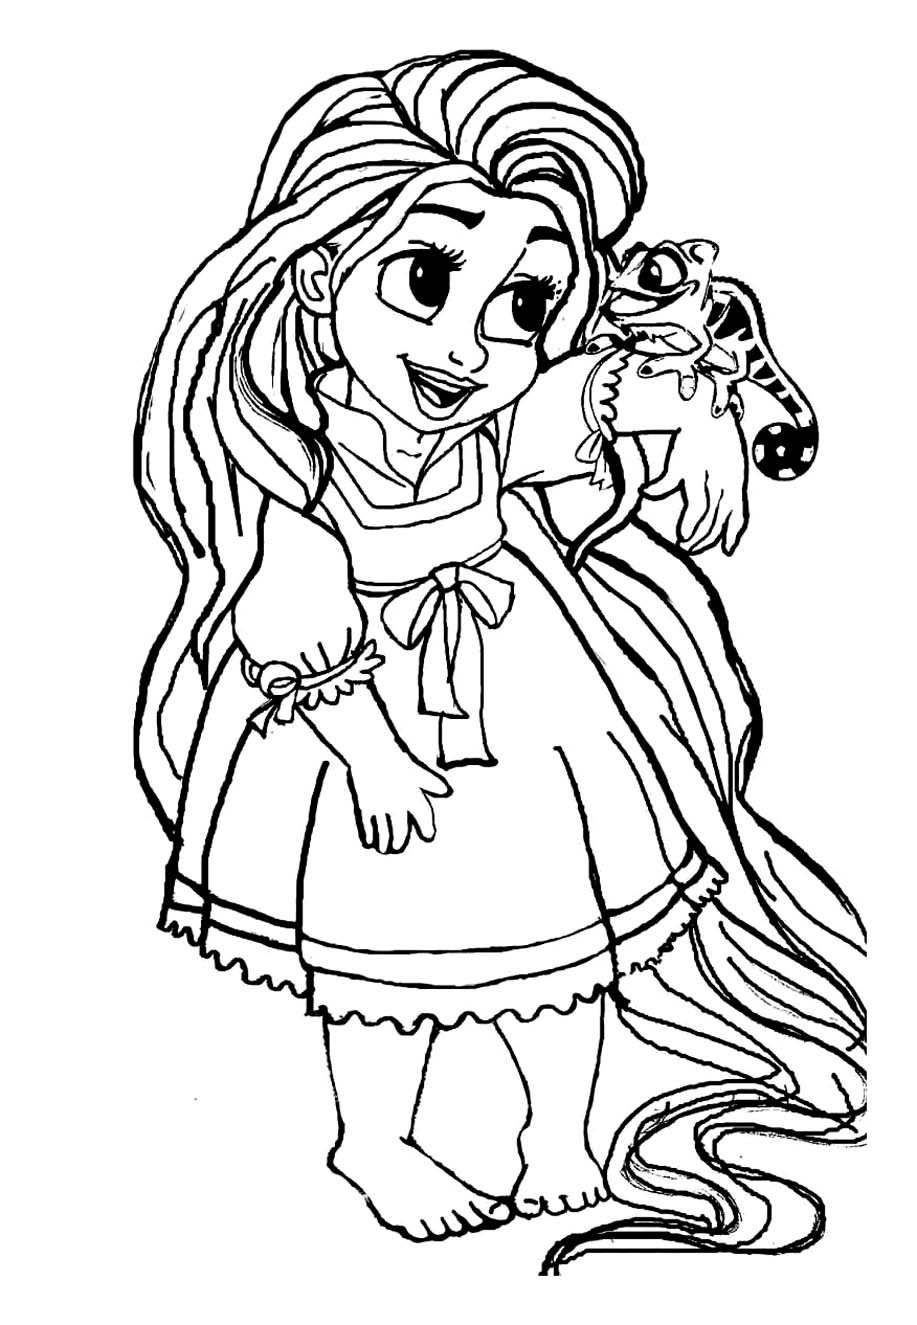 tangled coloring page coloring pages quottangledquot free printable coloring pages of tangled coloring page 1 1